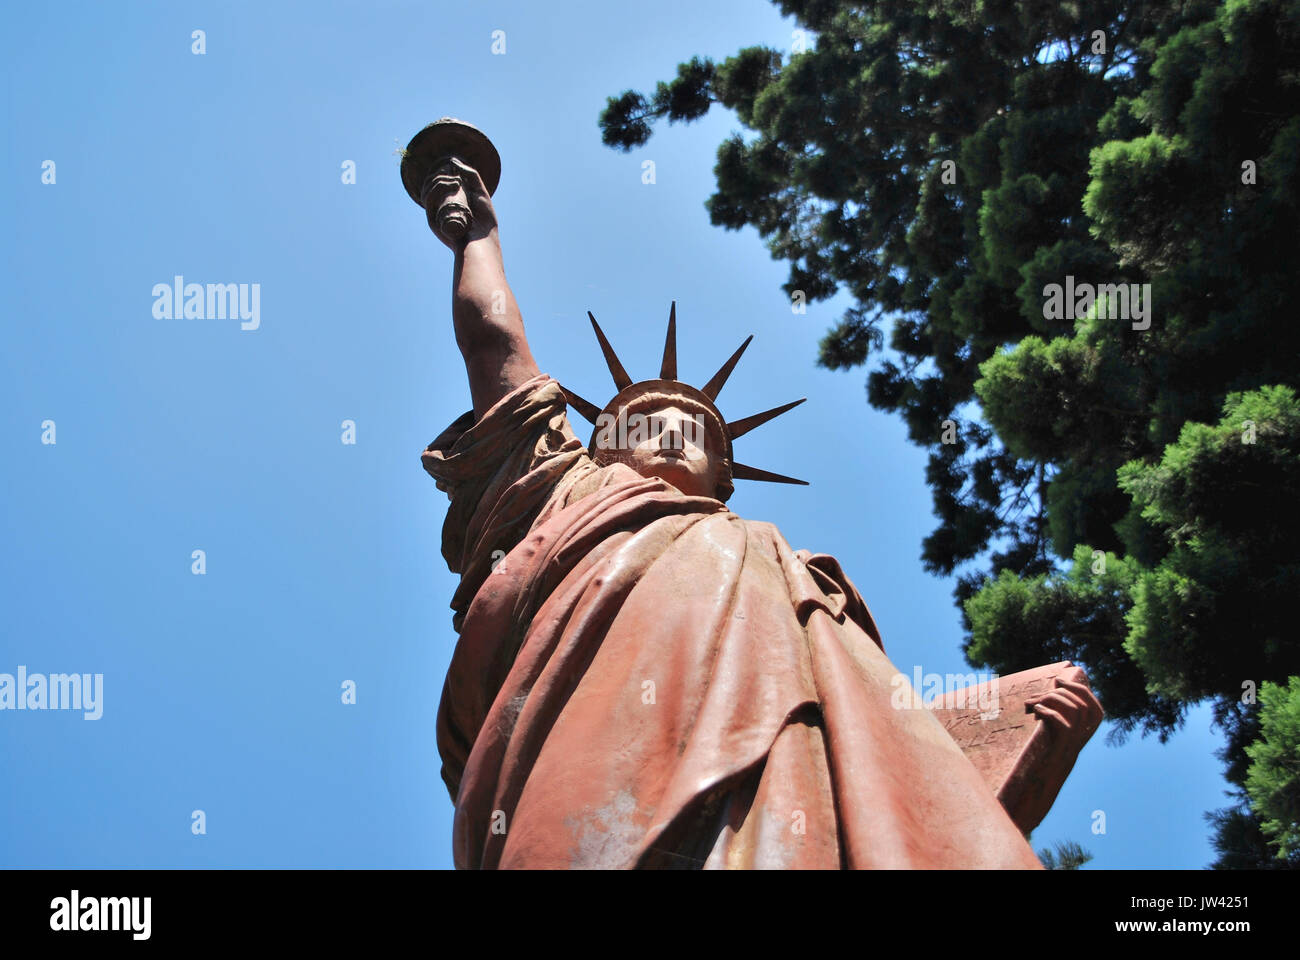 march 2, 2015 - Buenos Aires/Argentina: copy of statue of liberty in plaza Barrancas de Belgrano public park - Stock Image